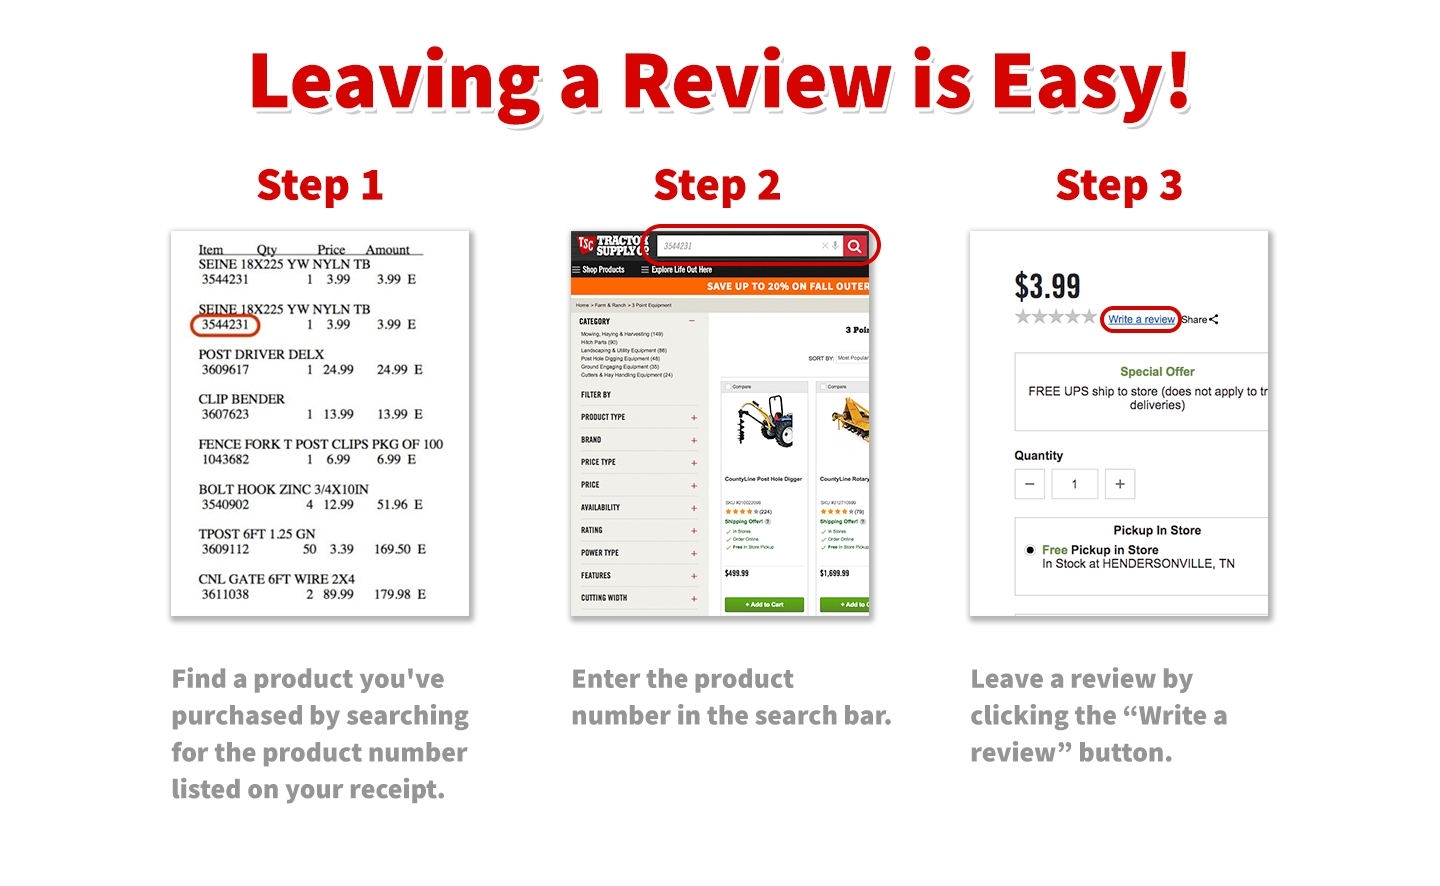 Ratings & Reviews | Tractor Supply Co